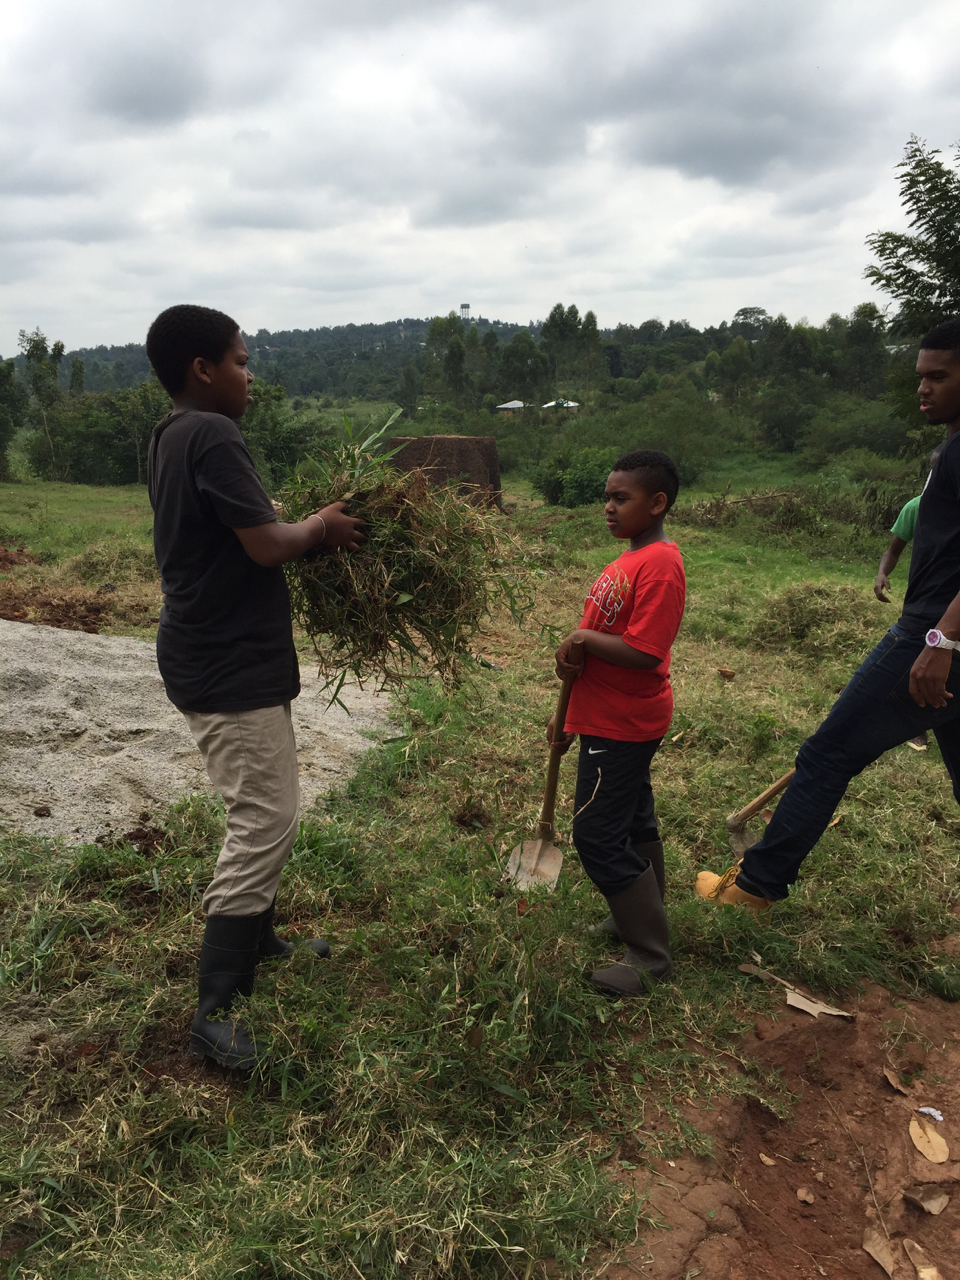 David, Paul, and Joël help clear brush so ground may be leveled